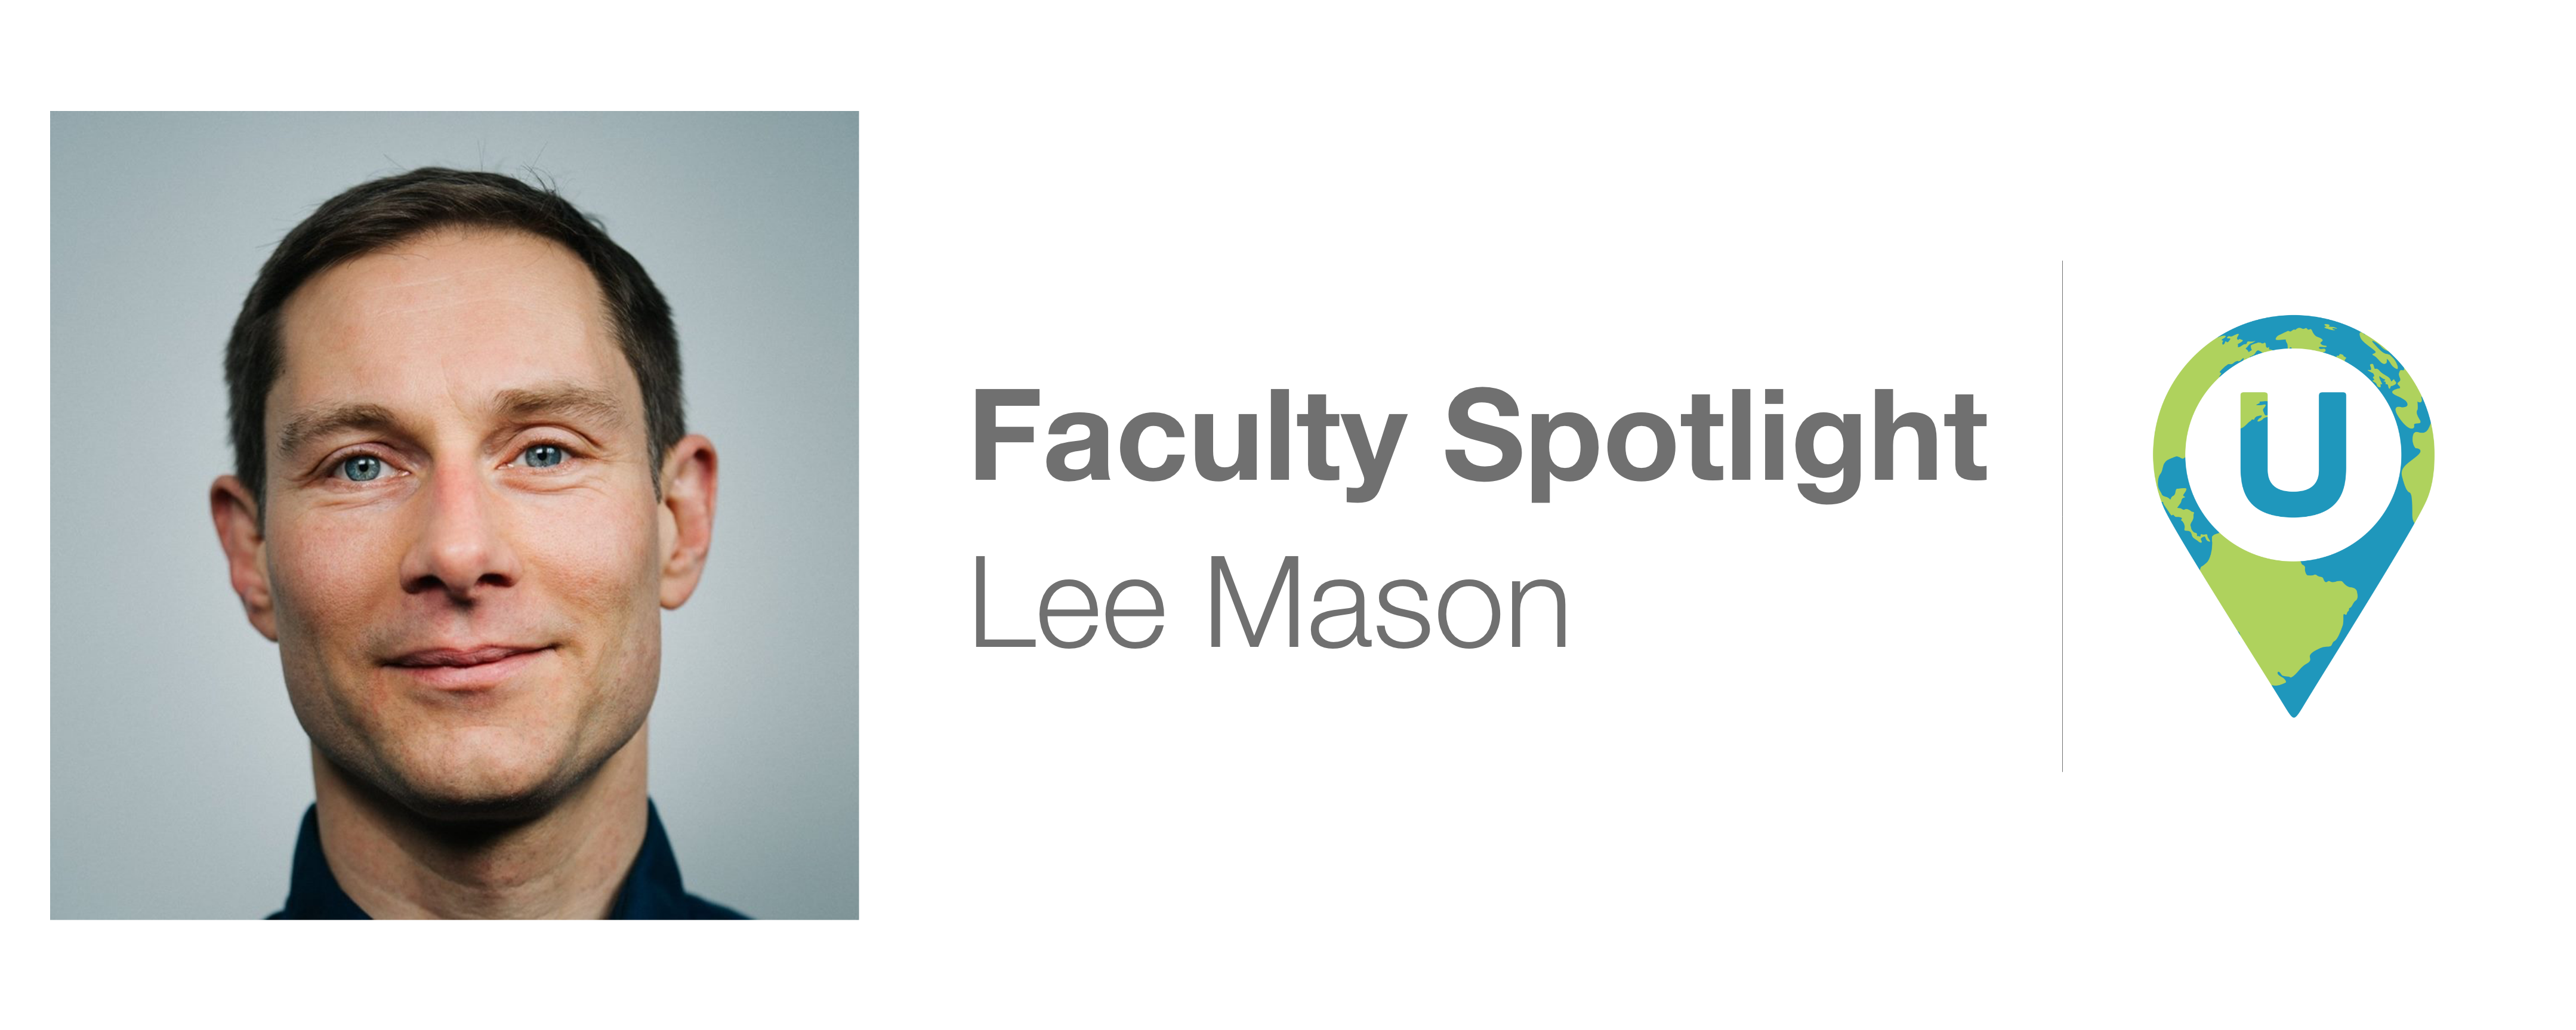 Faculty Spotlight: Lee Mason